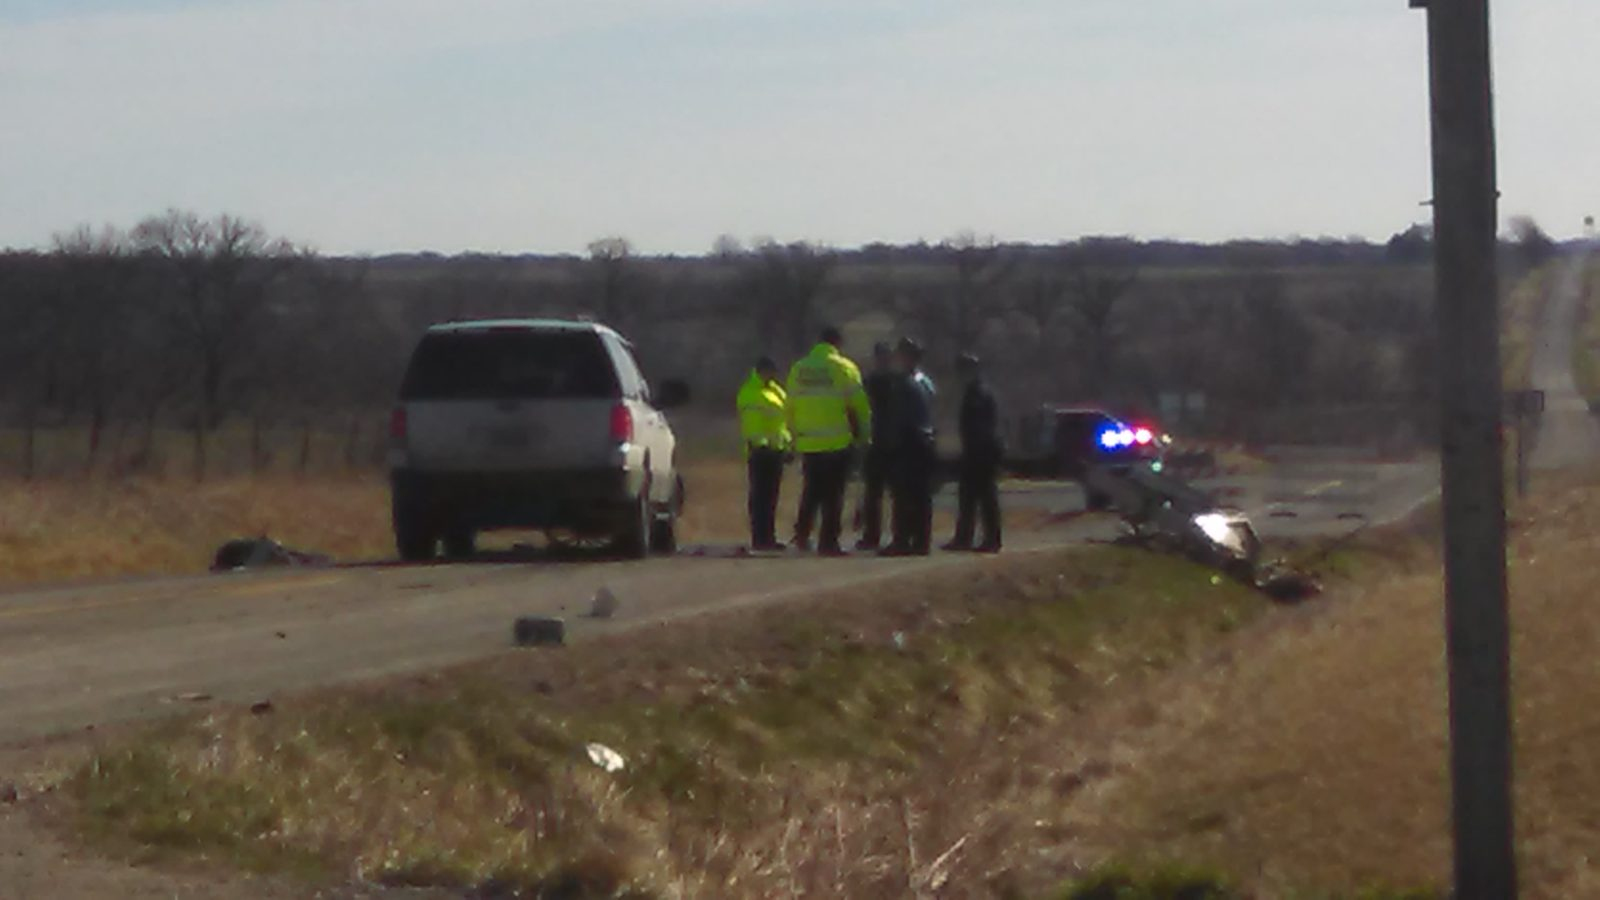 Fatality Accident in Livingston County